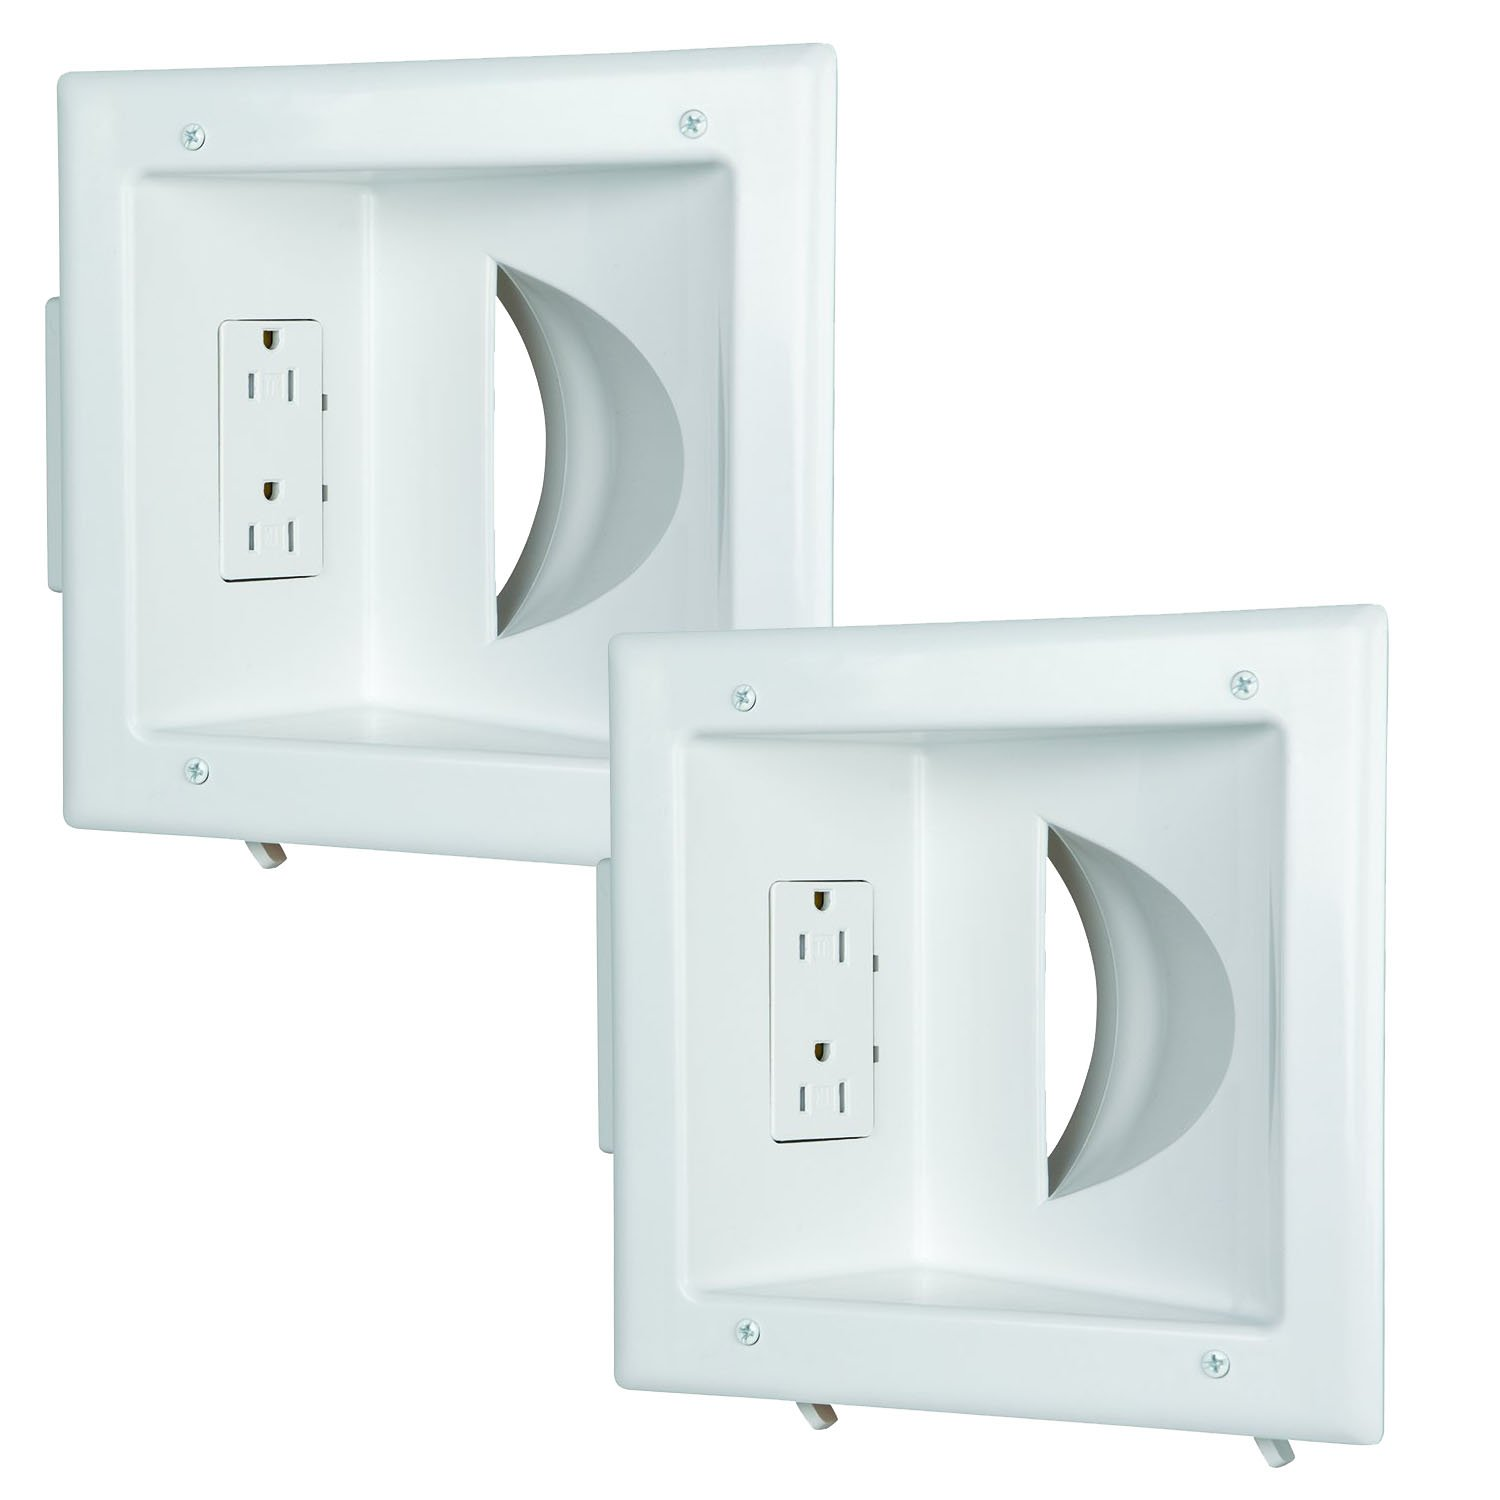 DataComm 45-0031-WH-2PK (2 PACK) Recessed Low-Voltage Media Plate with Duplex Receptacle - White